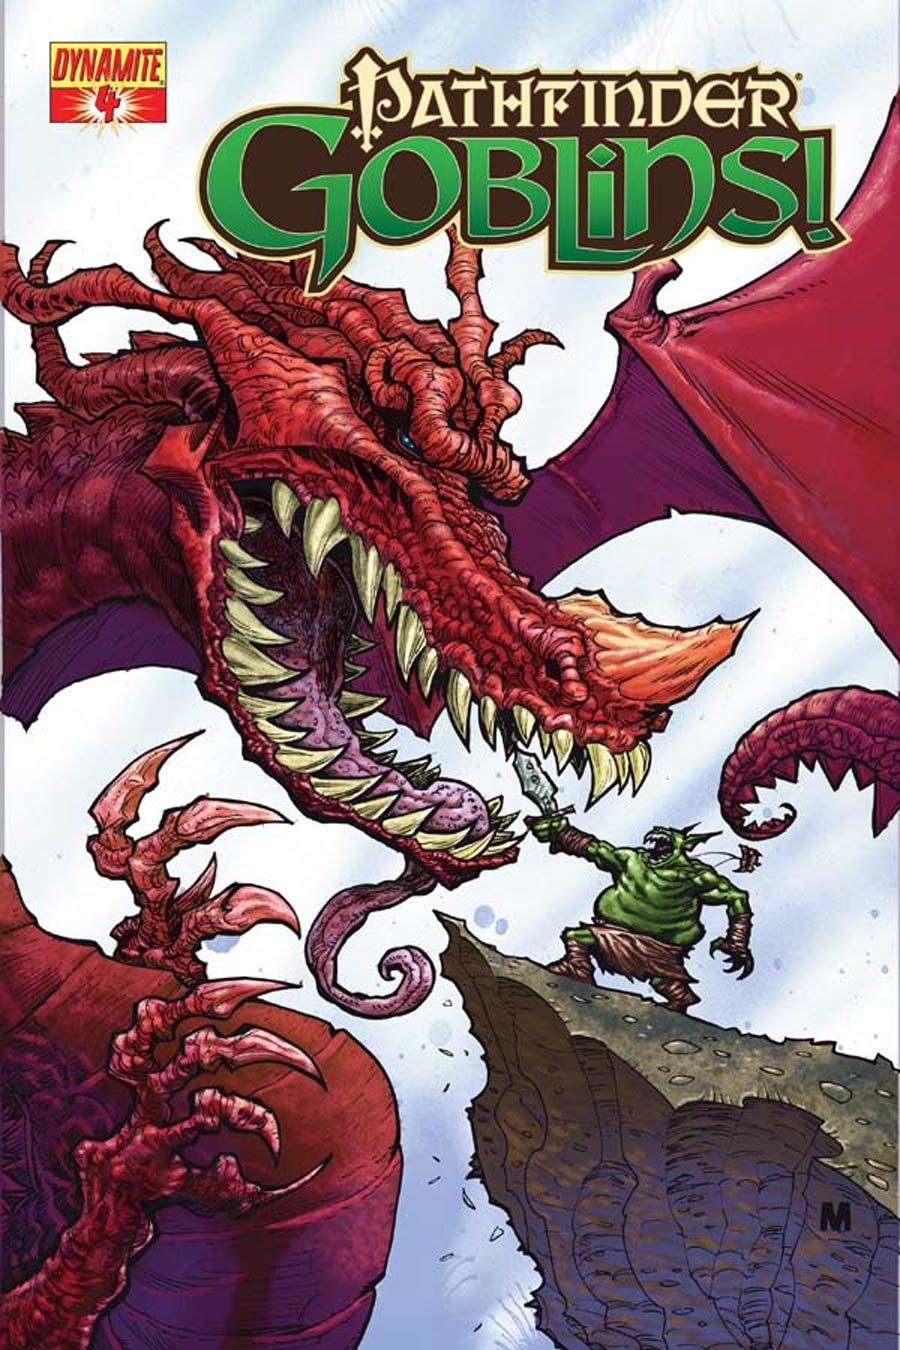 Pathfinder Goblins #4 Cover A Regular Christian Meesey Cover